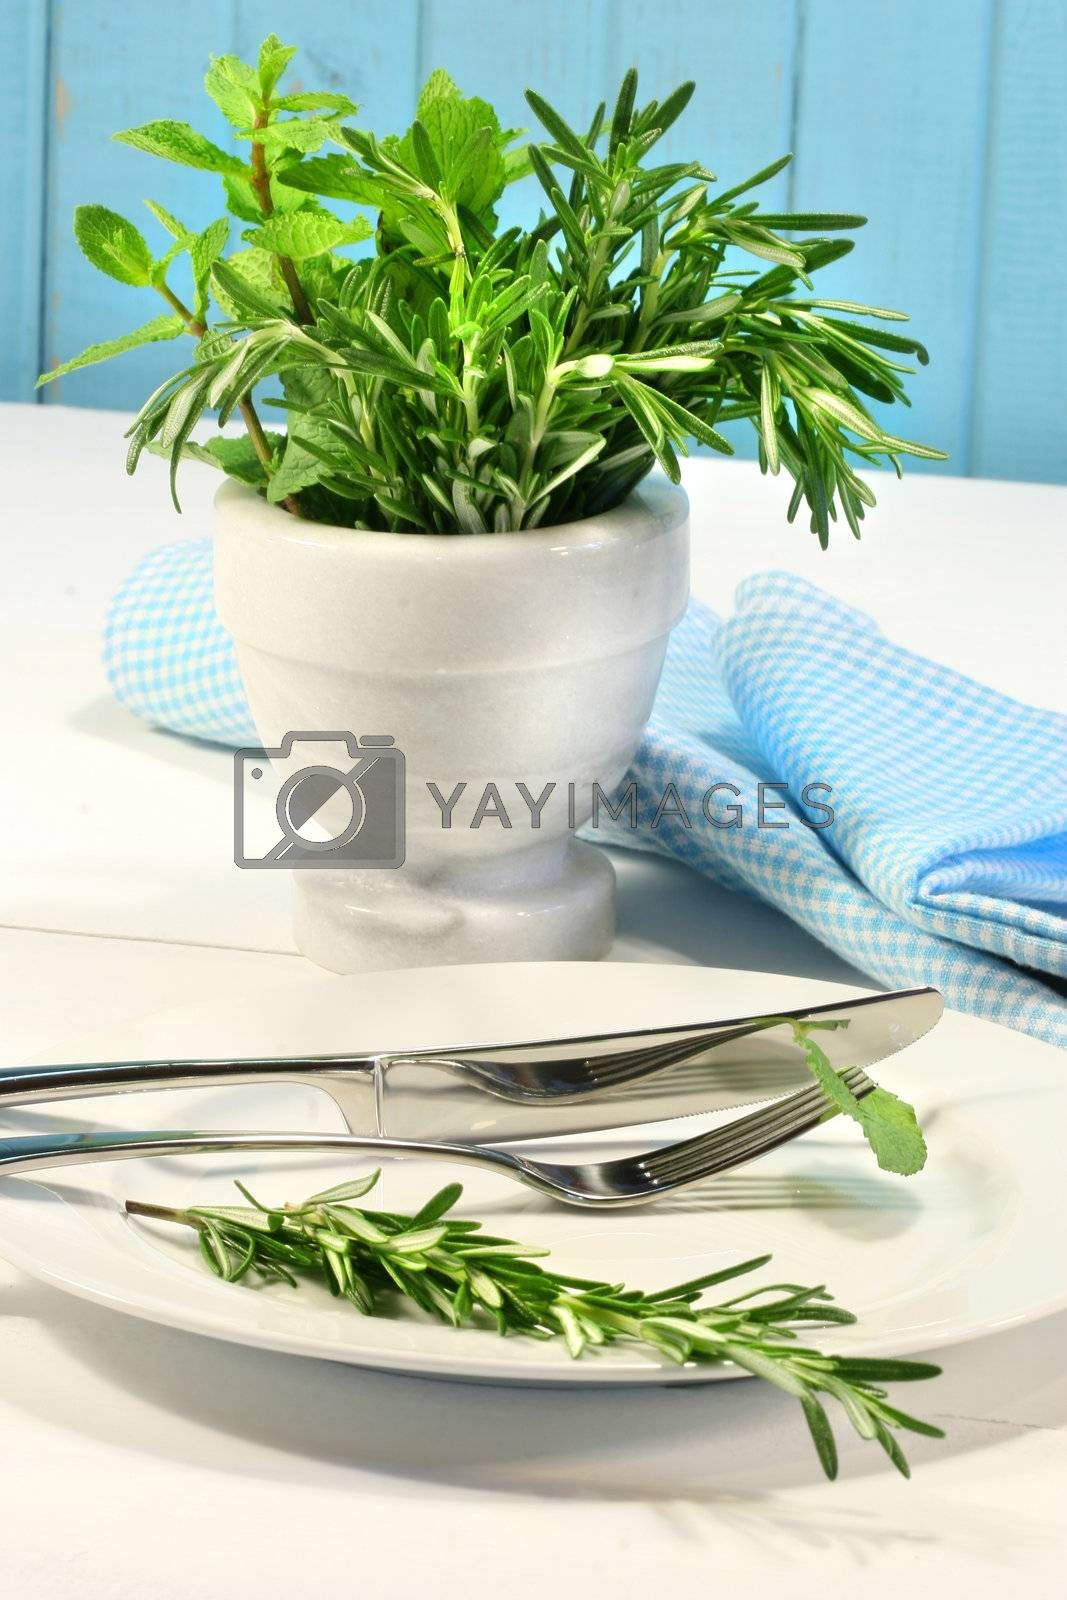 Fresh green herbs on a table in the kitchen